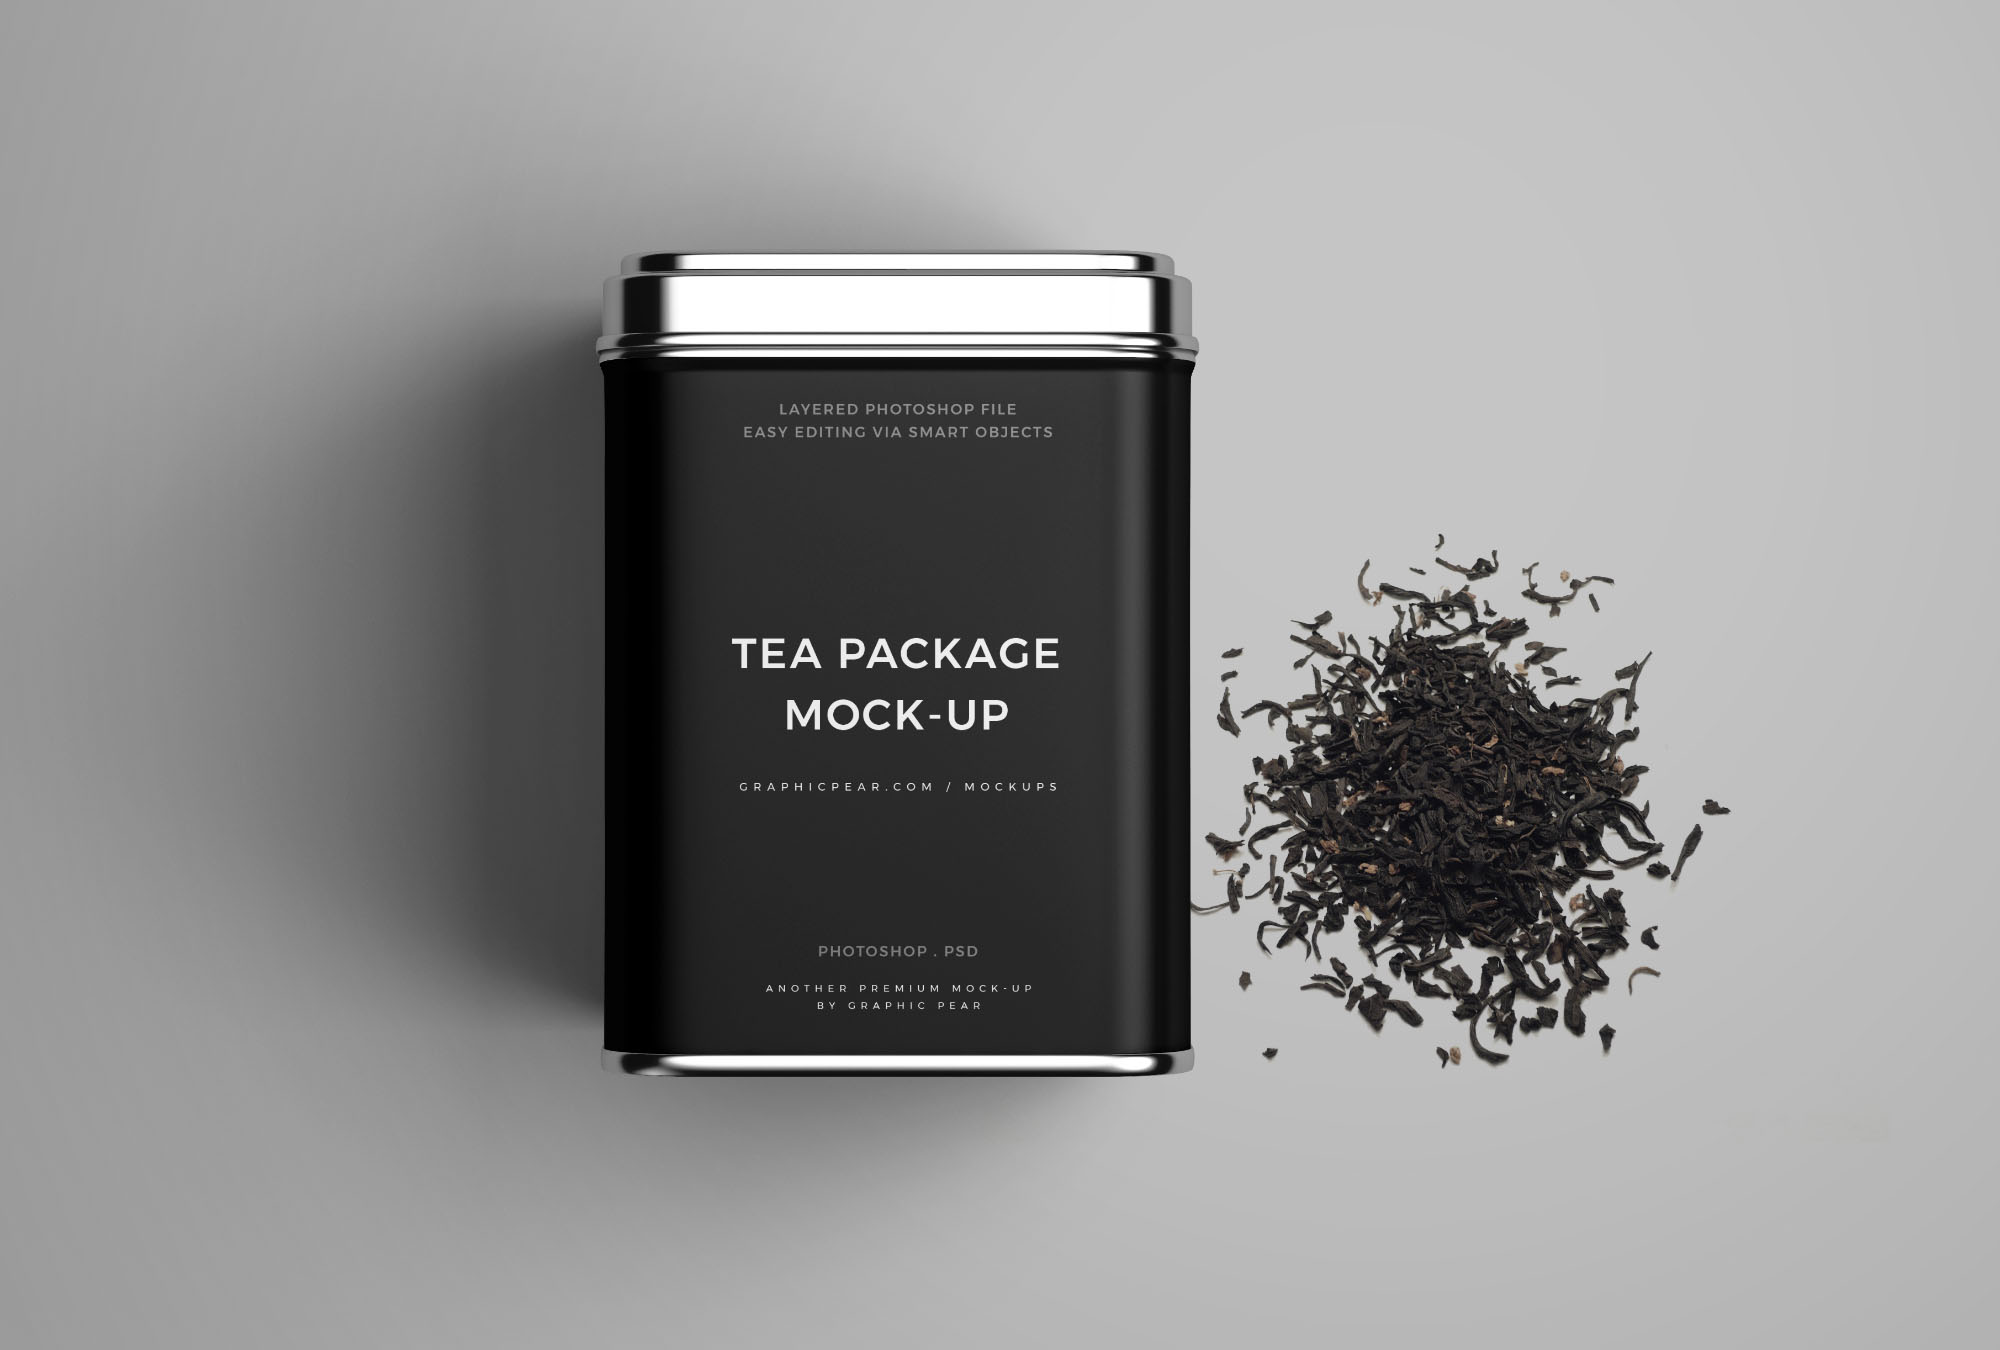 Tea package with dry tea